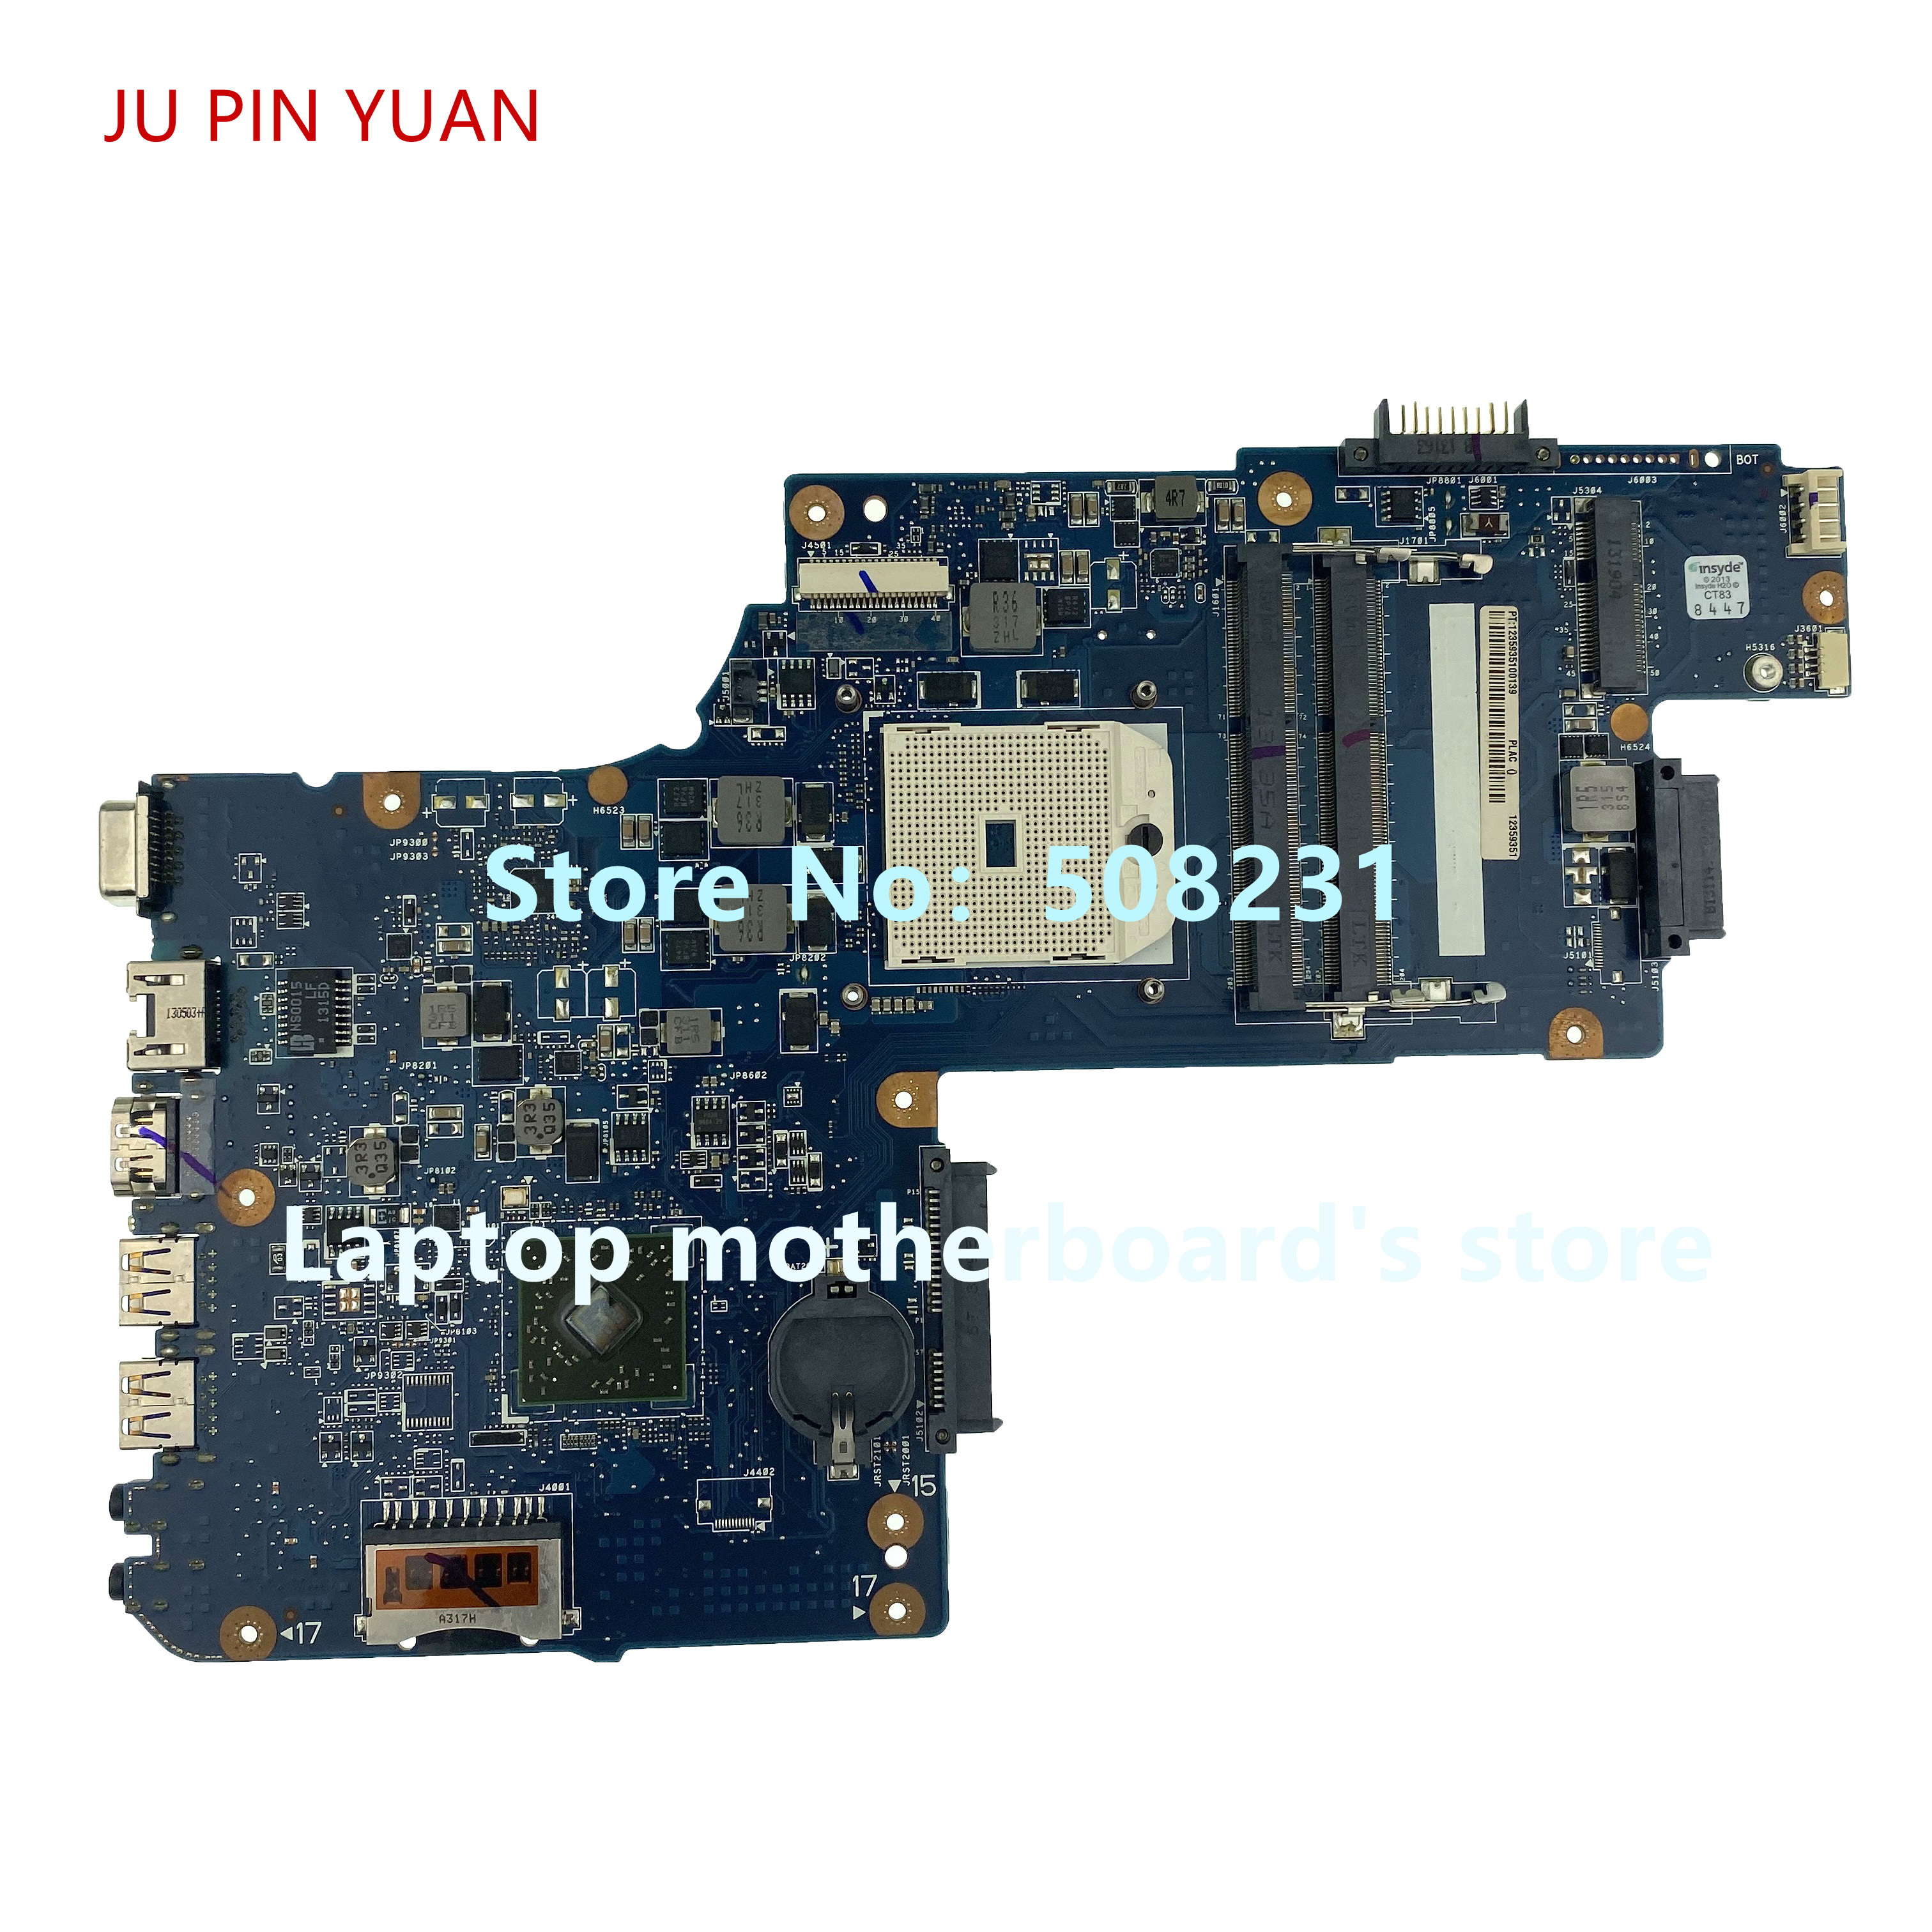 JU PIN YUAN For Toshiba Satellite L850D L855D C850 C855D C850D Laptop Motherboard PLAC/CSAC H000052420 100% Fully Tested